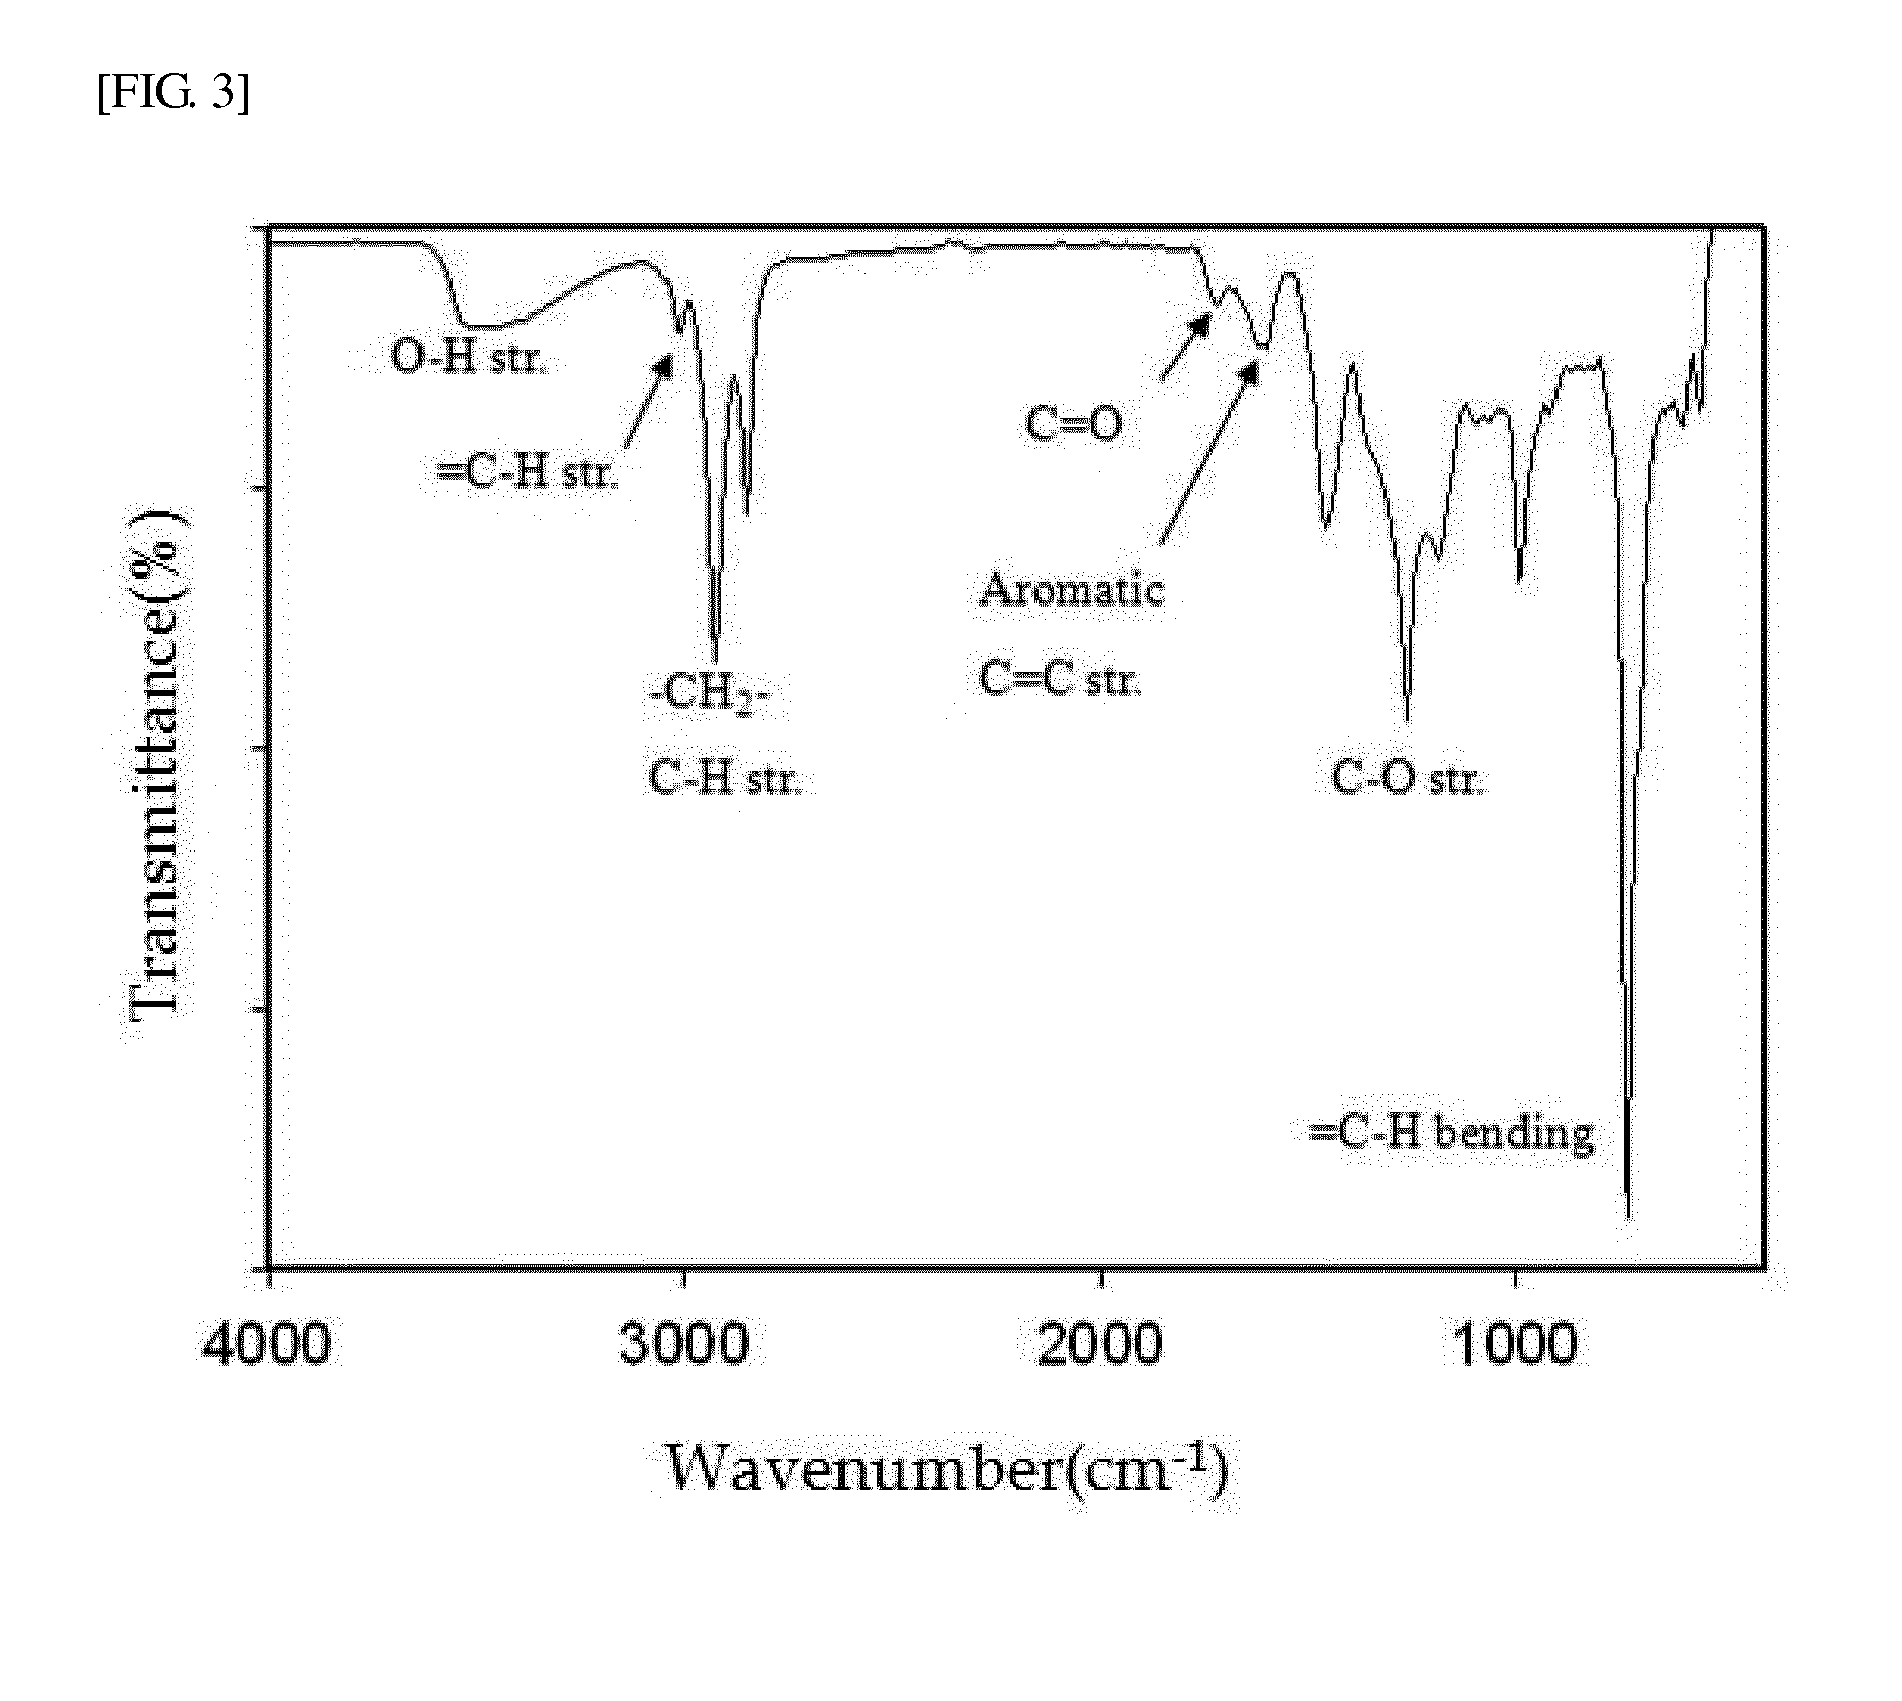 What is the IR absorption bands and NMR data of triphenyl methanol?